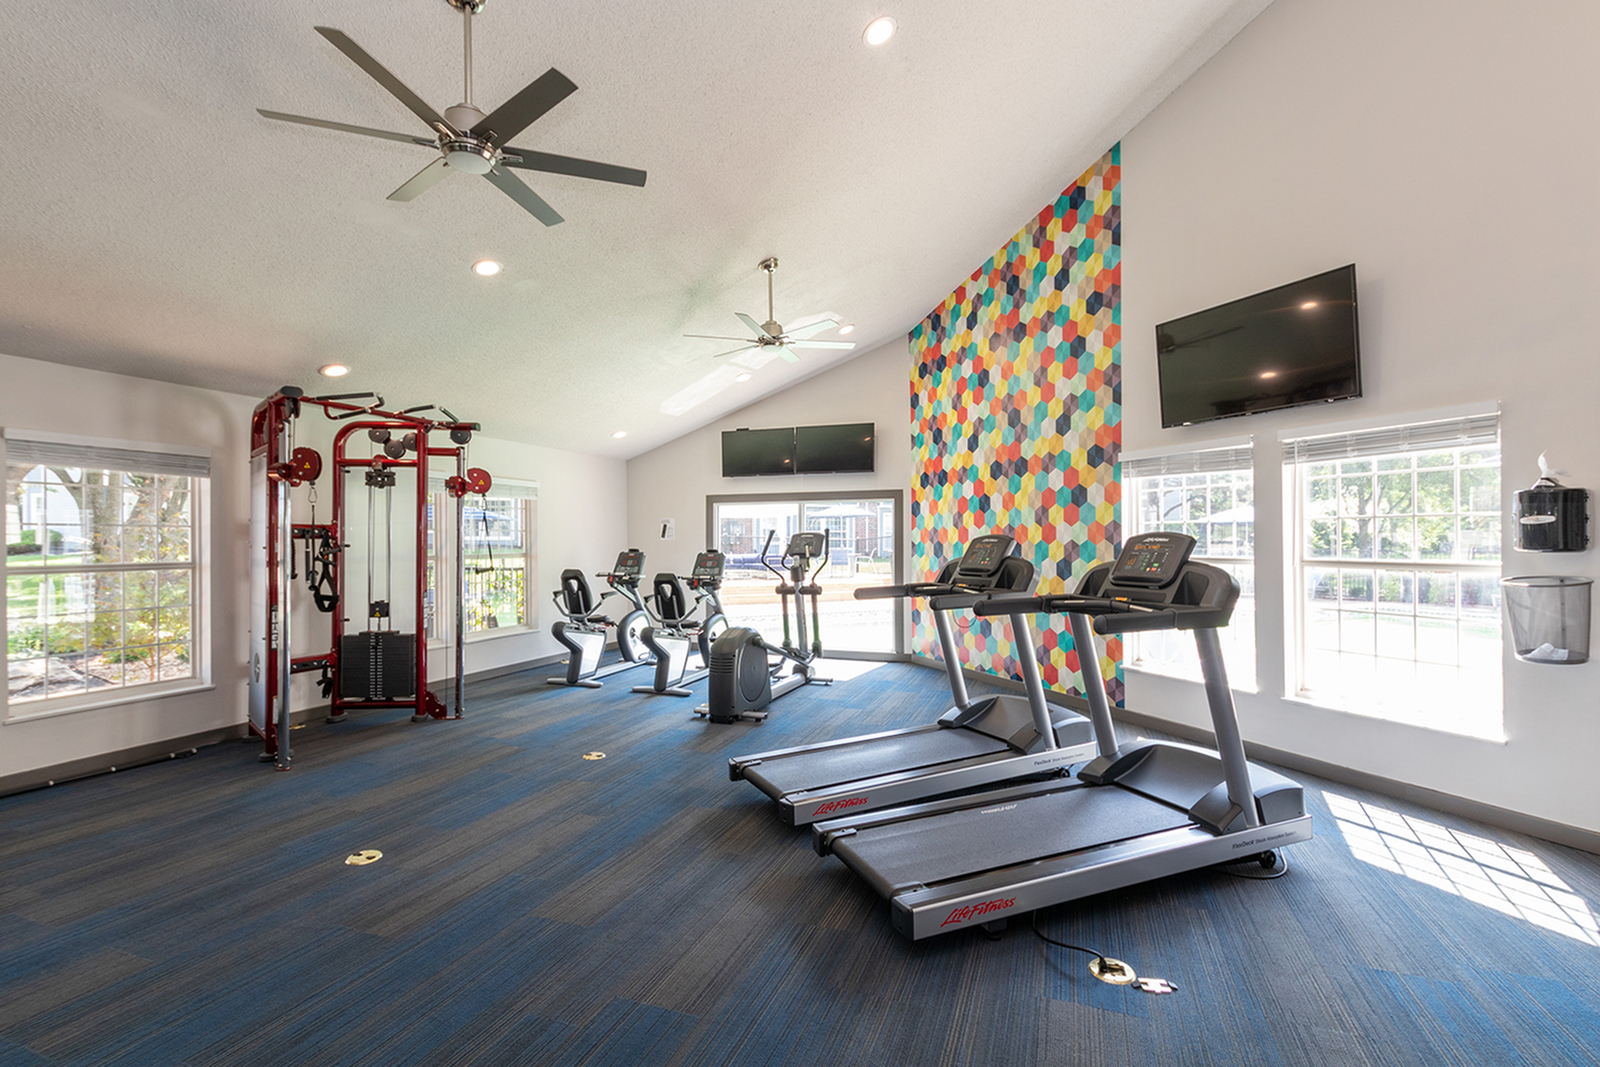 Image of 24 Hour Fitness Studio for ReNew Chesterfield